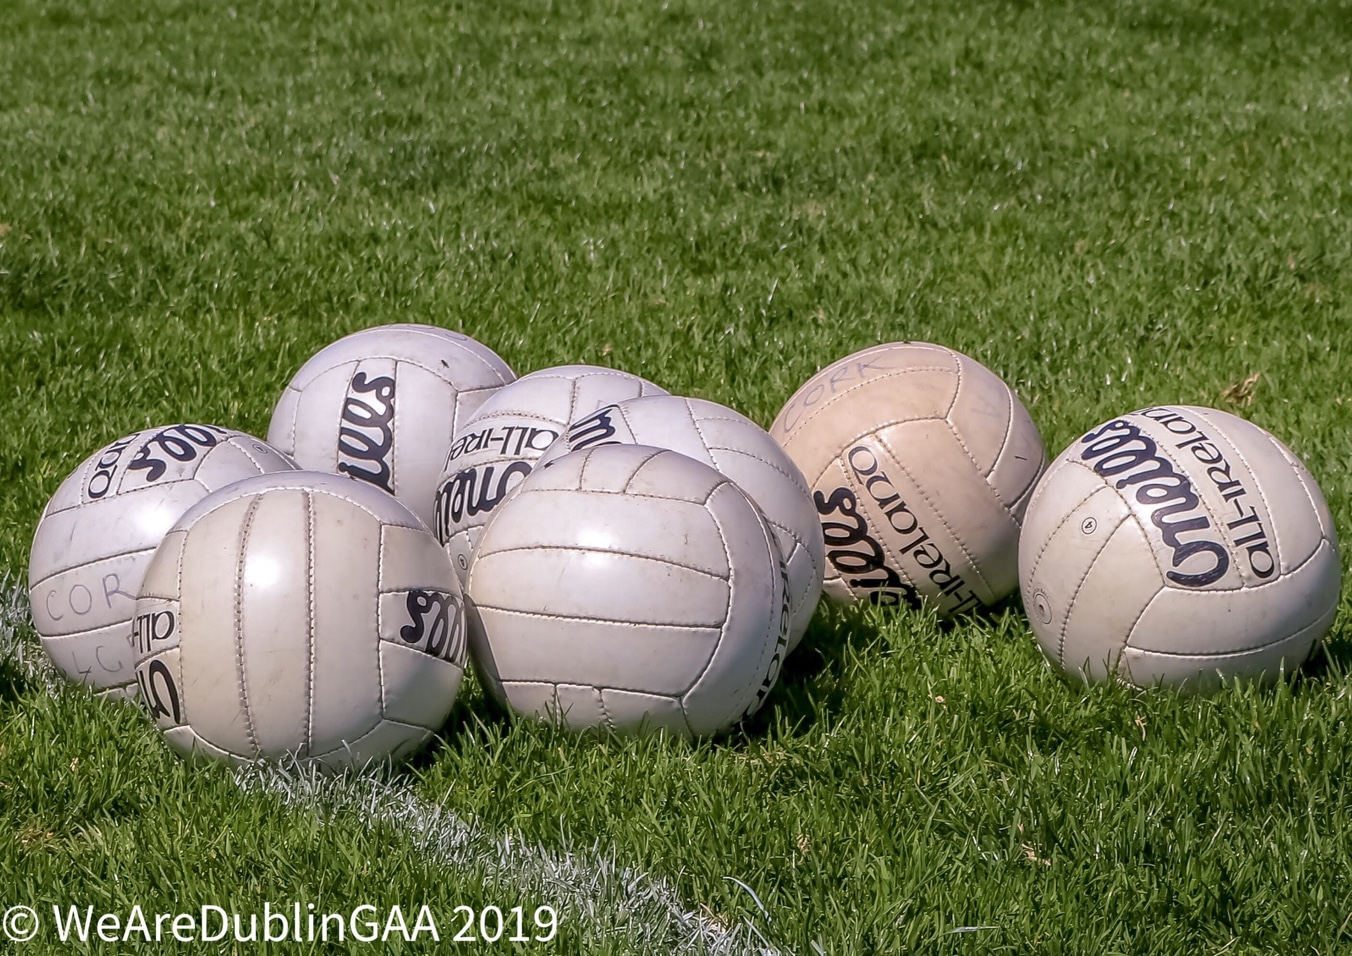 A group of Gaelic footballs on a pitch ahead of a training session, it's being reported that a plan to return to inter-county training at some point in the summer is being considered by the Department of Transport, Tourism and Sport.